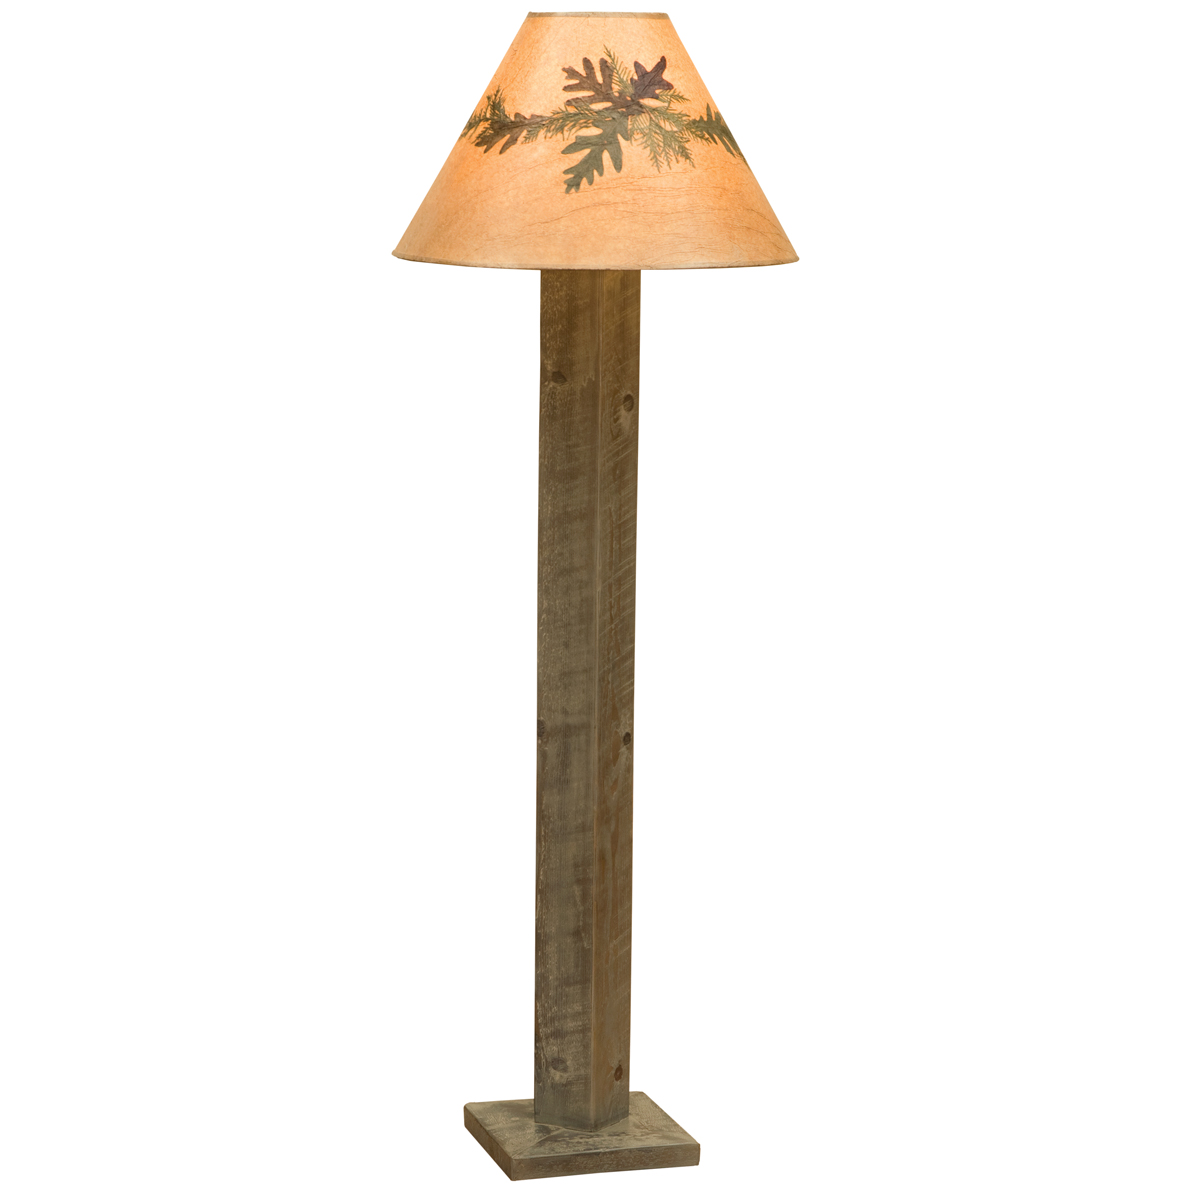 Black Forest Decor Frontier driftwood floor lamp with ext...